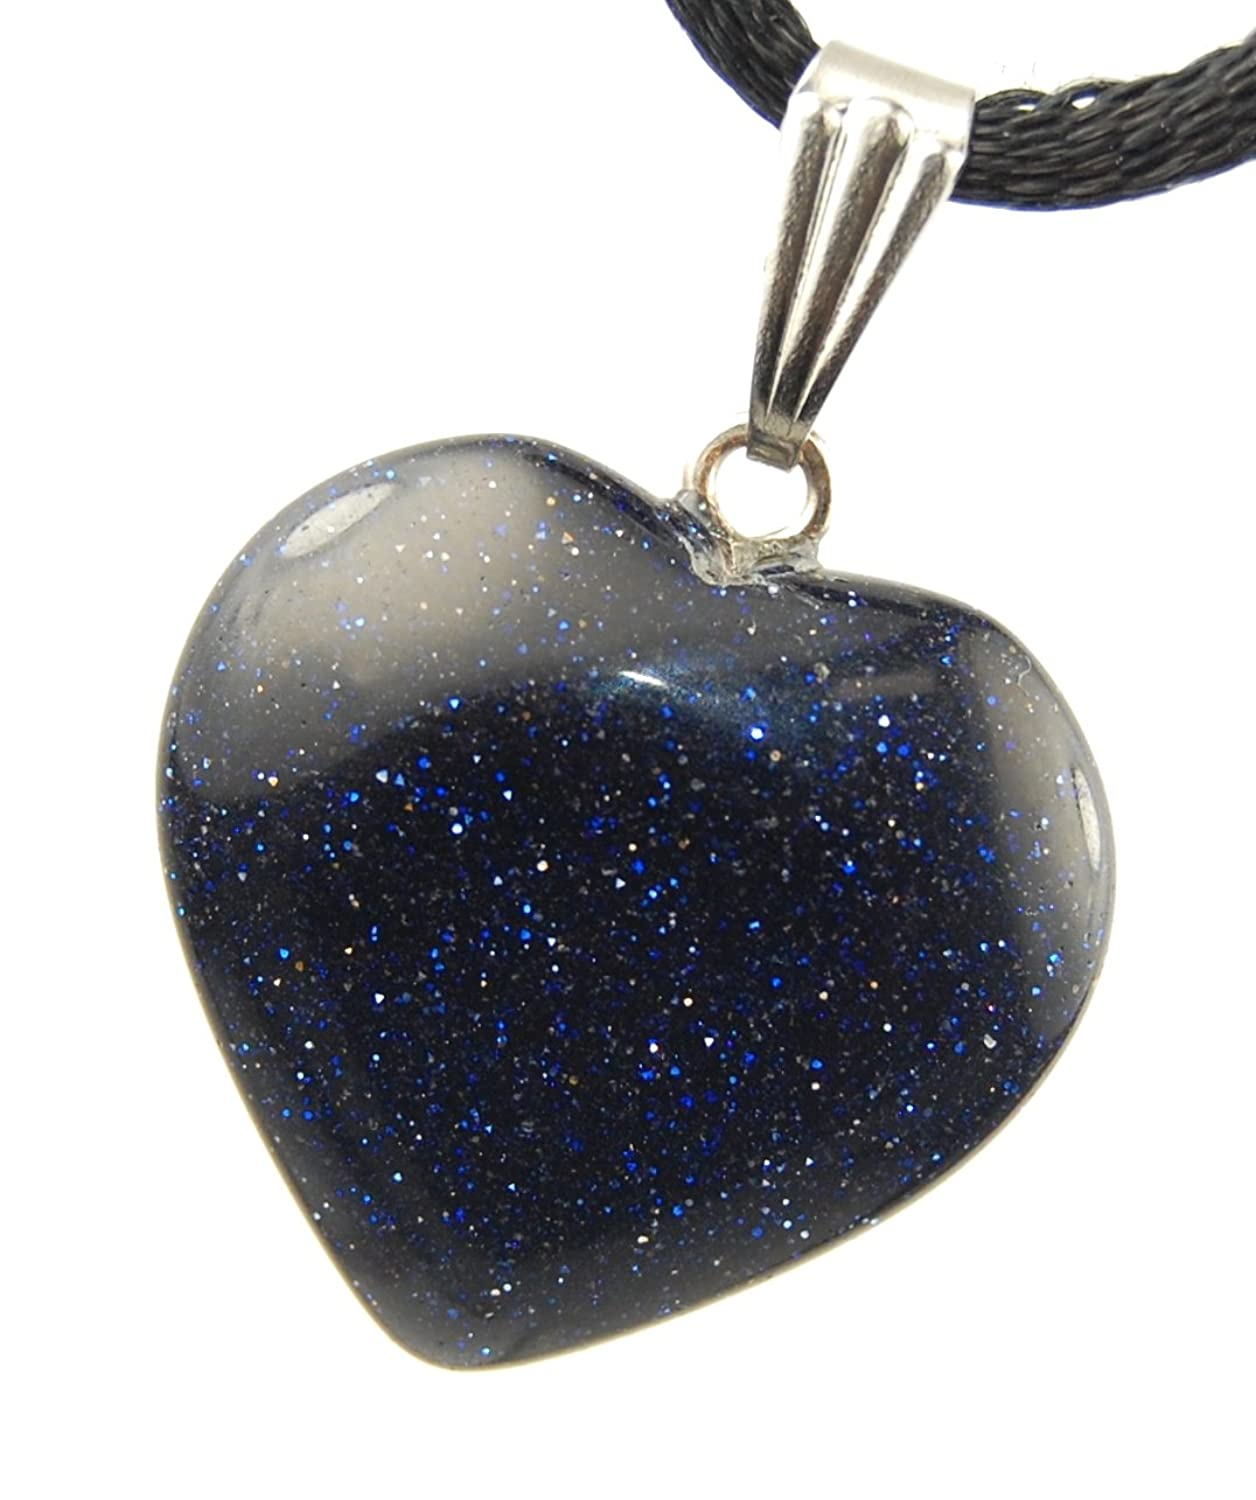 """Big Heart Collection - 20mm Classic Galaxy Goldstone Black Blue Sparkle, 20"""" Adjustable Soft Black Poly Woven Washable Cord Stainless Bail - Natural Crystal Gemstone Carved Necklace Charm"""